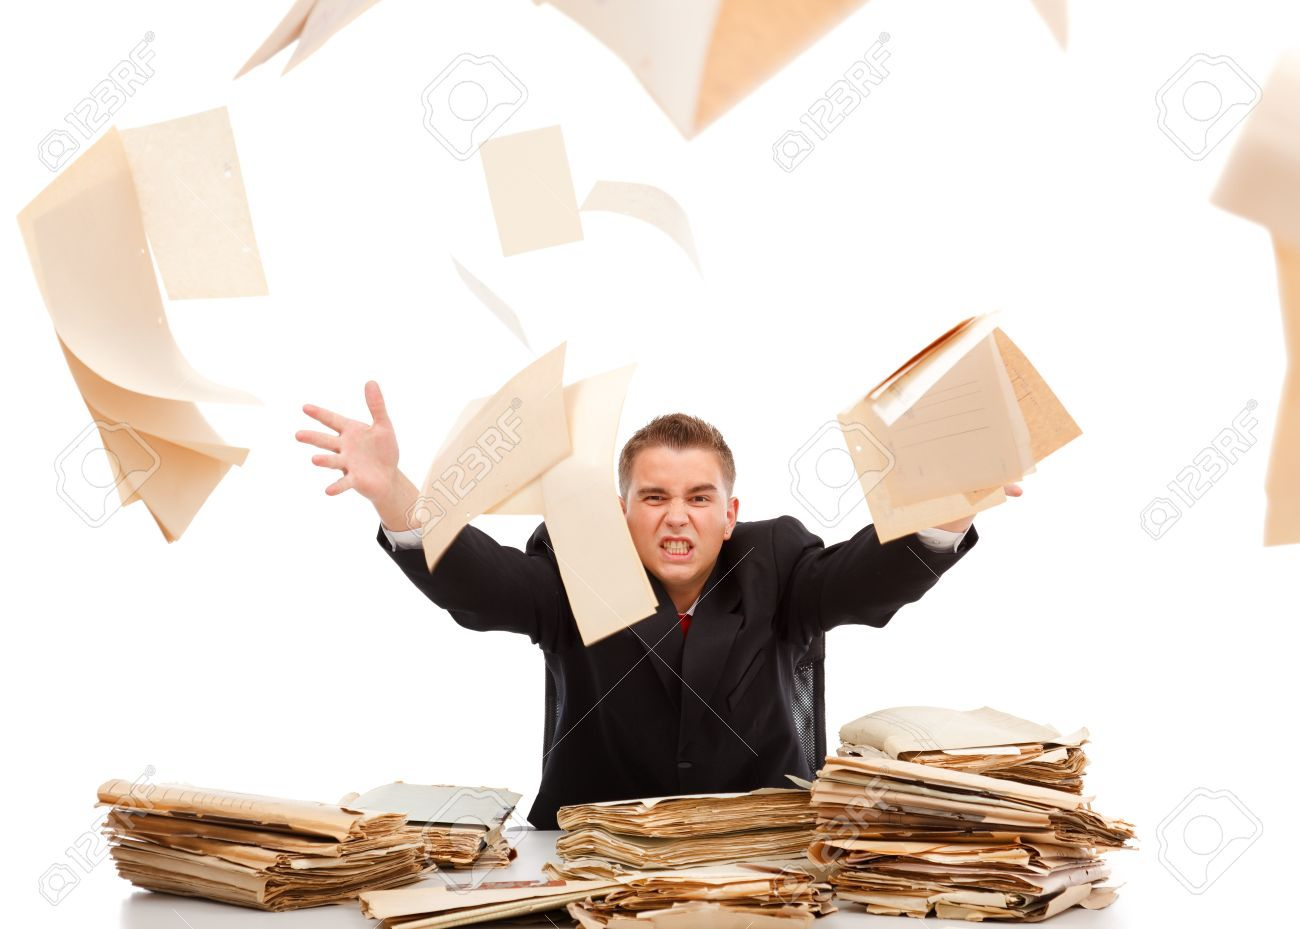 Angry business man throwing away lots of paperwork Stock Photo - 7872947